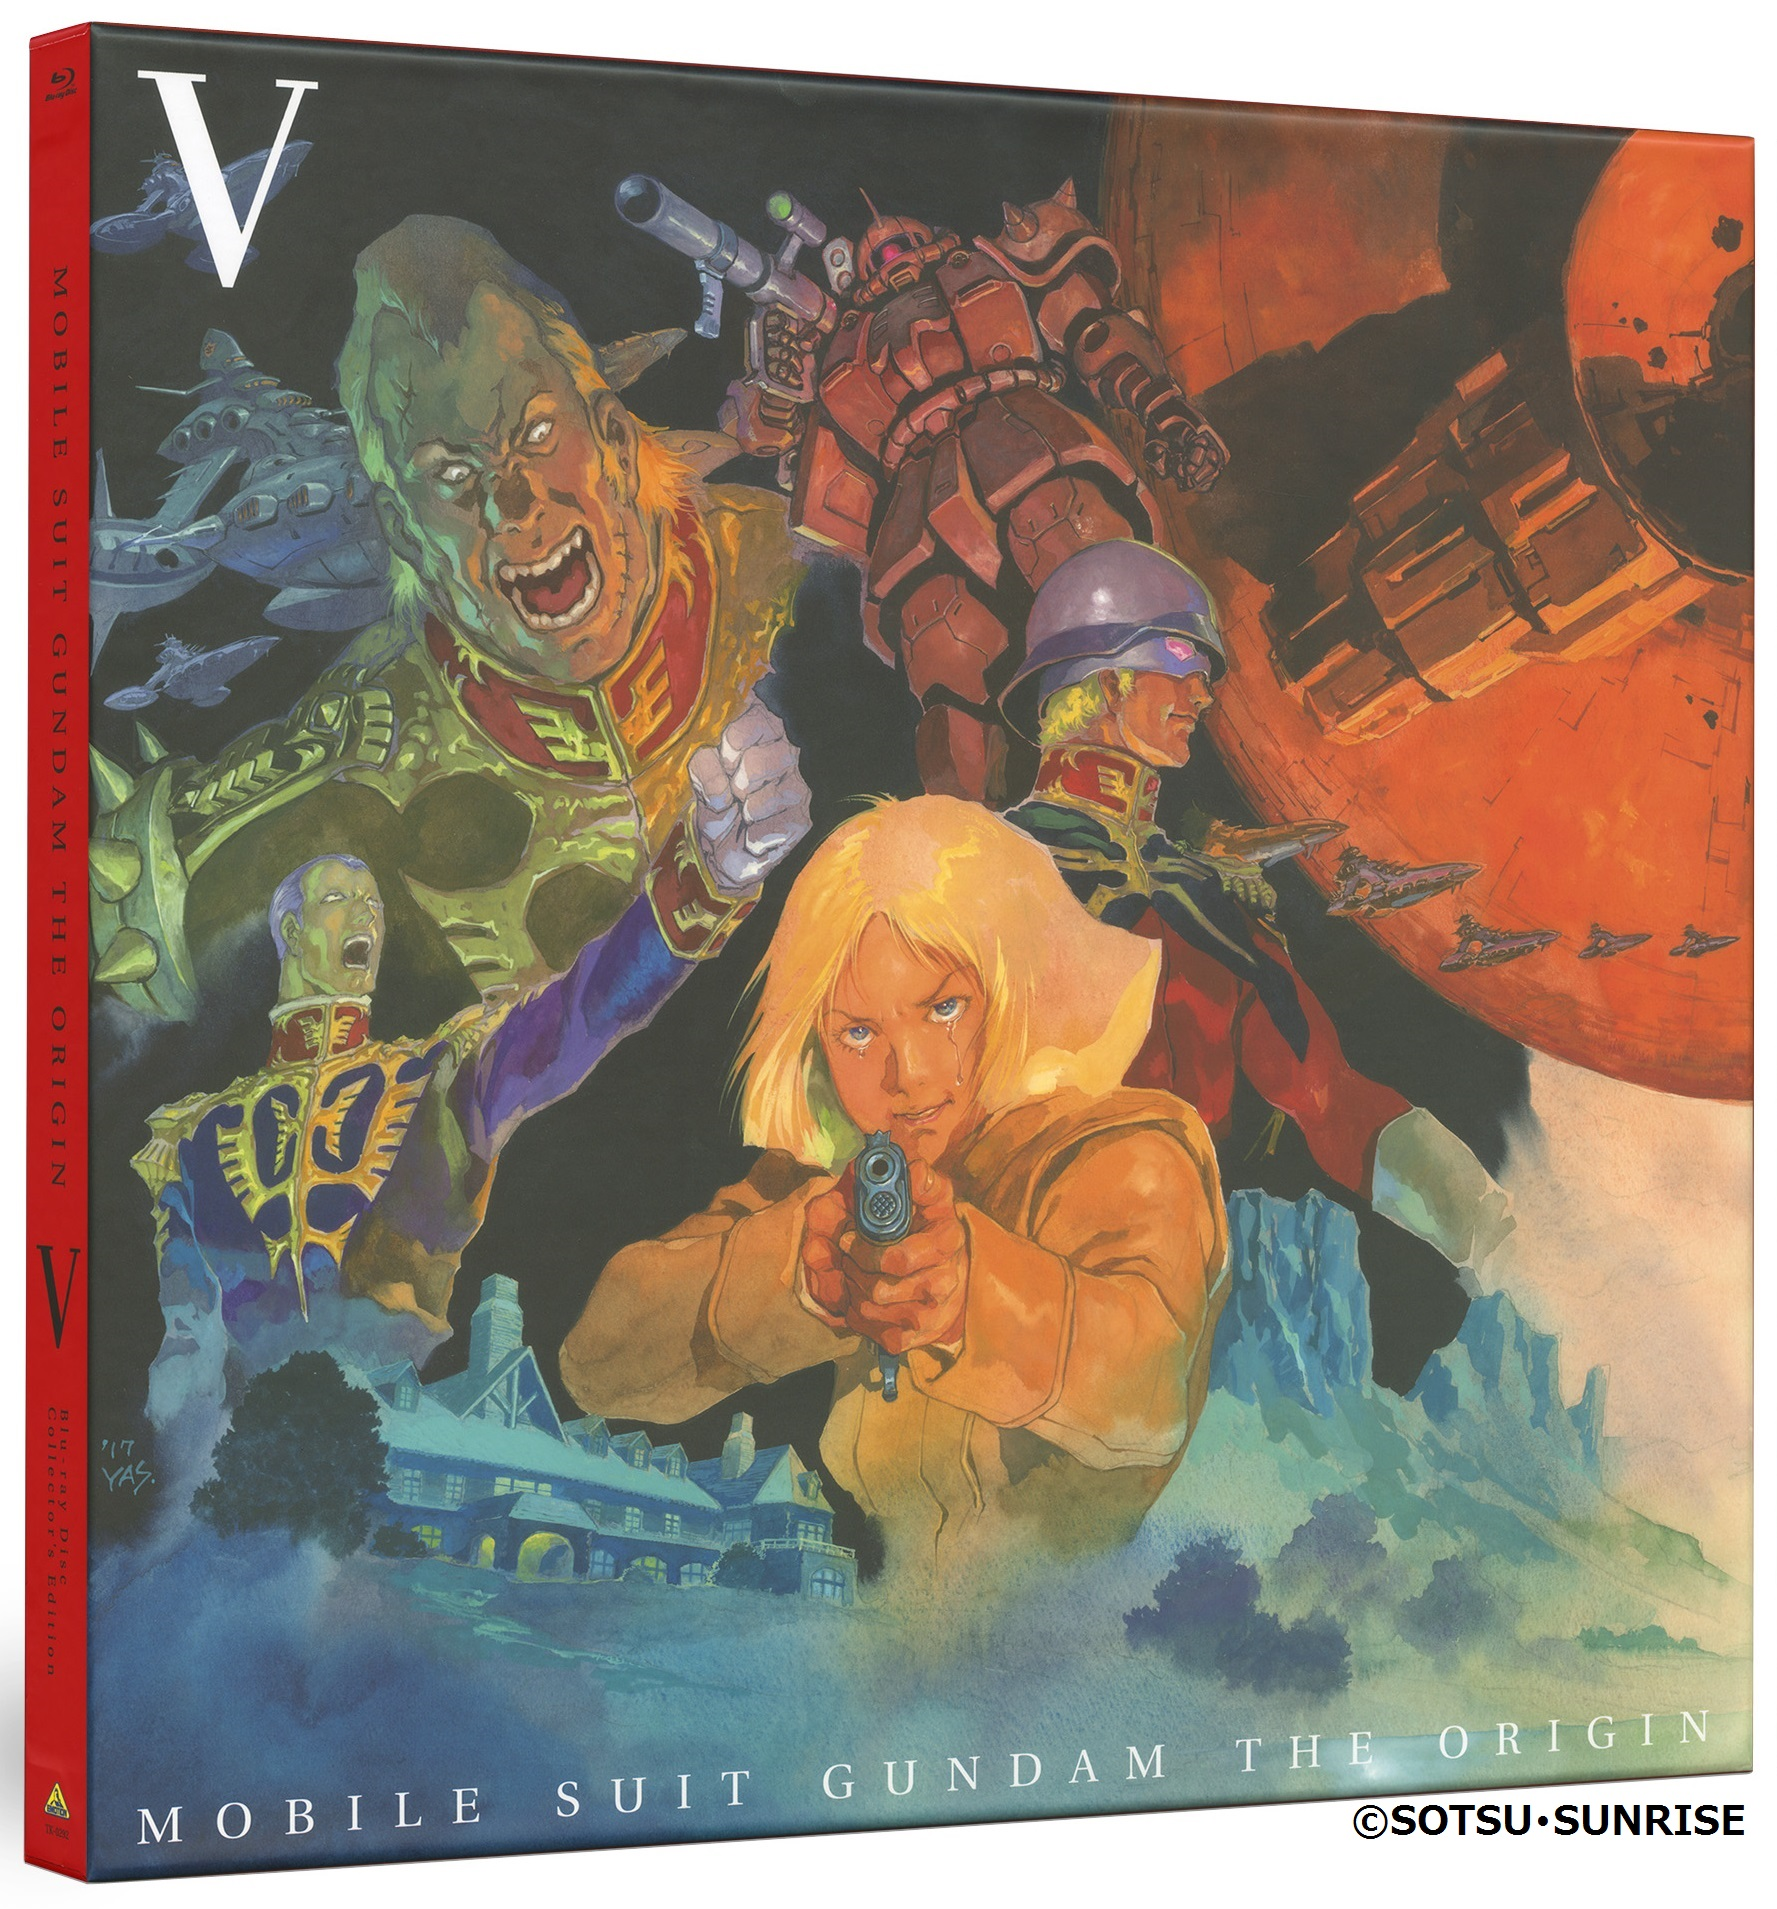 Mobile Suit Gundam The Origin Collector's Edition Blu-ray 5 (Import) 4934569911551